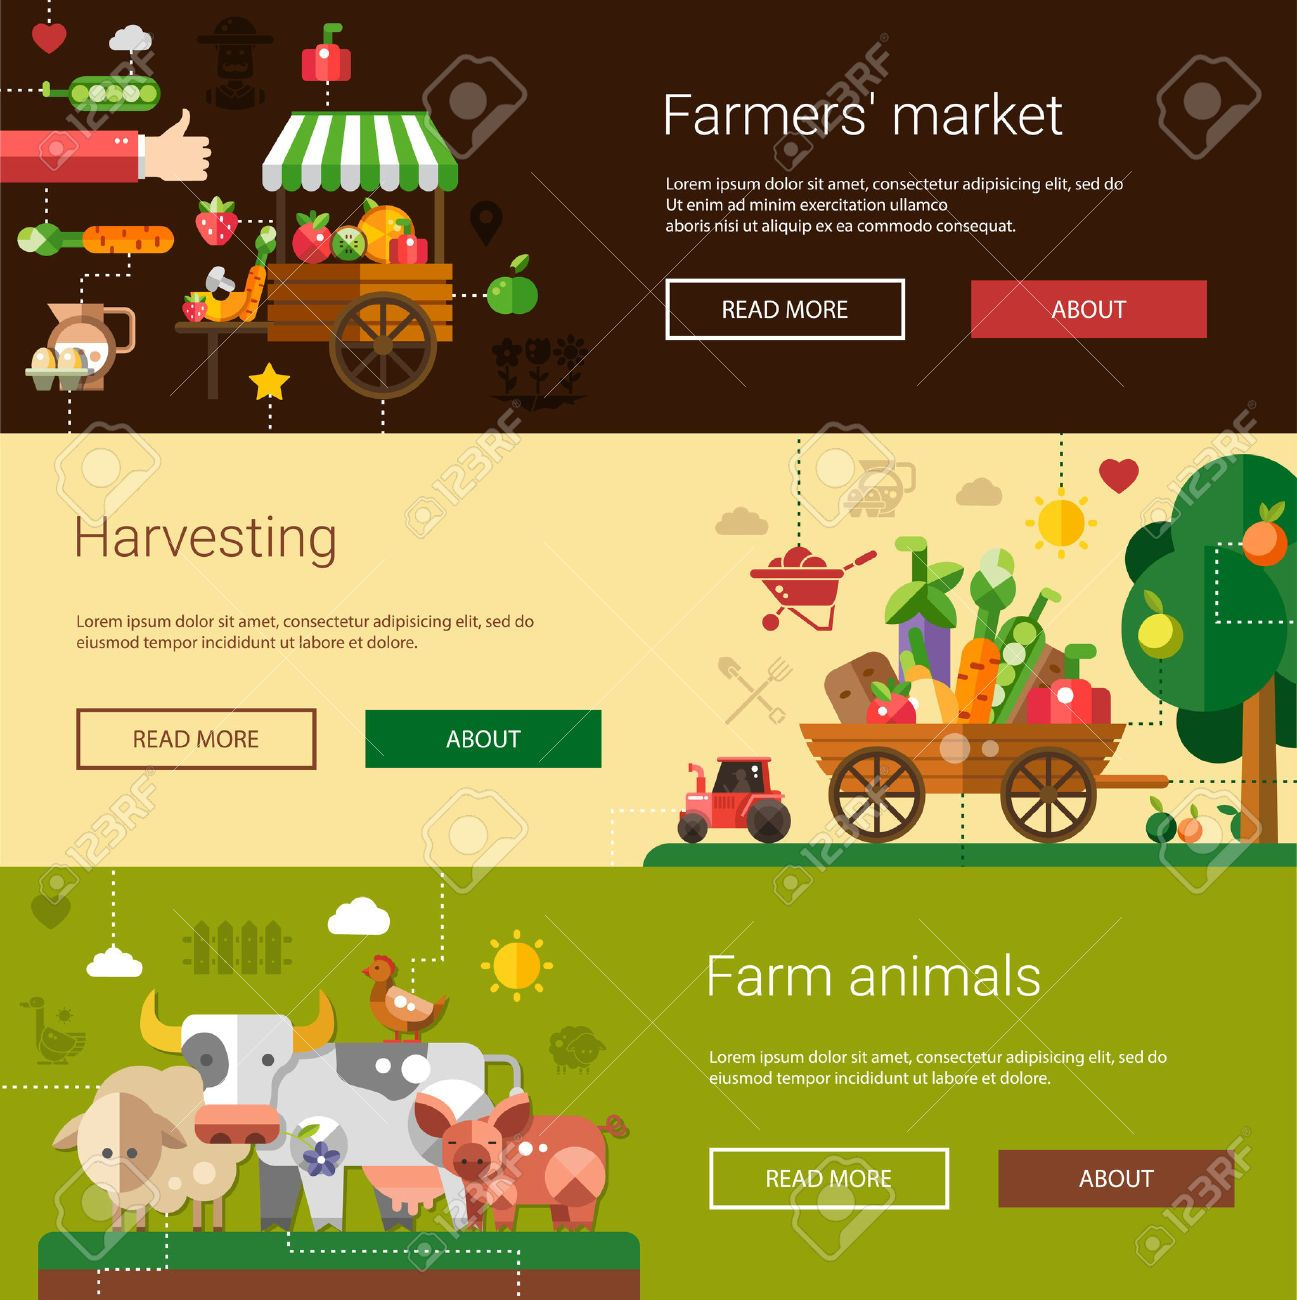 Free farm flyer template google search csa flyer pinterest free farm flyer template google search pronofoot35fo Image collections